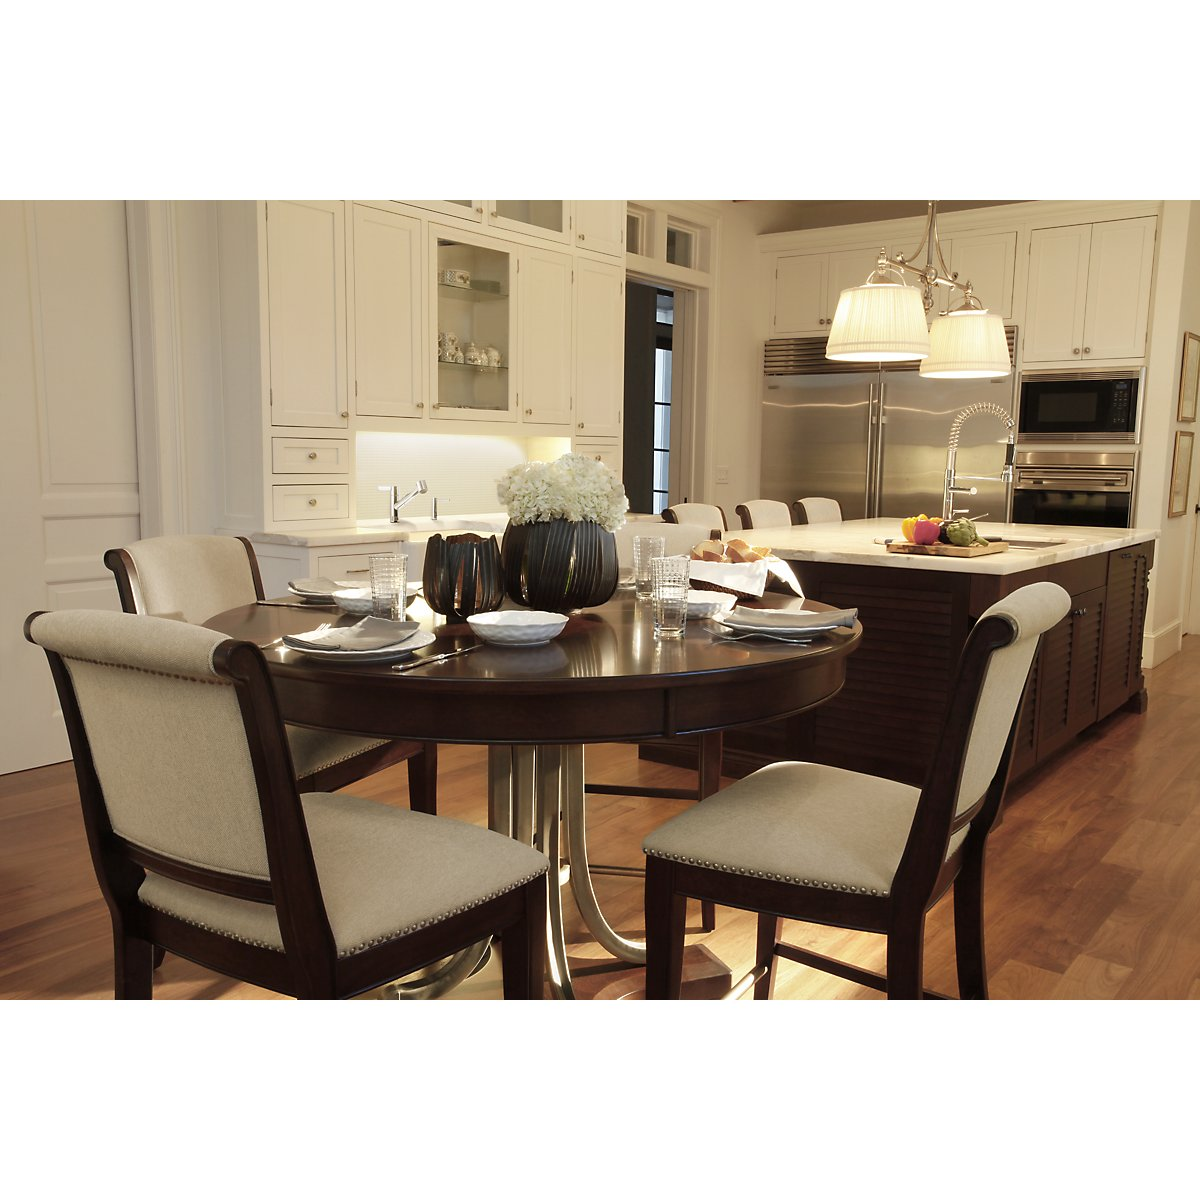 City Furniture Canyon Mid Tone Round High Table 4 Upholstered Barstools